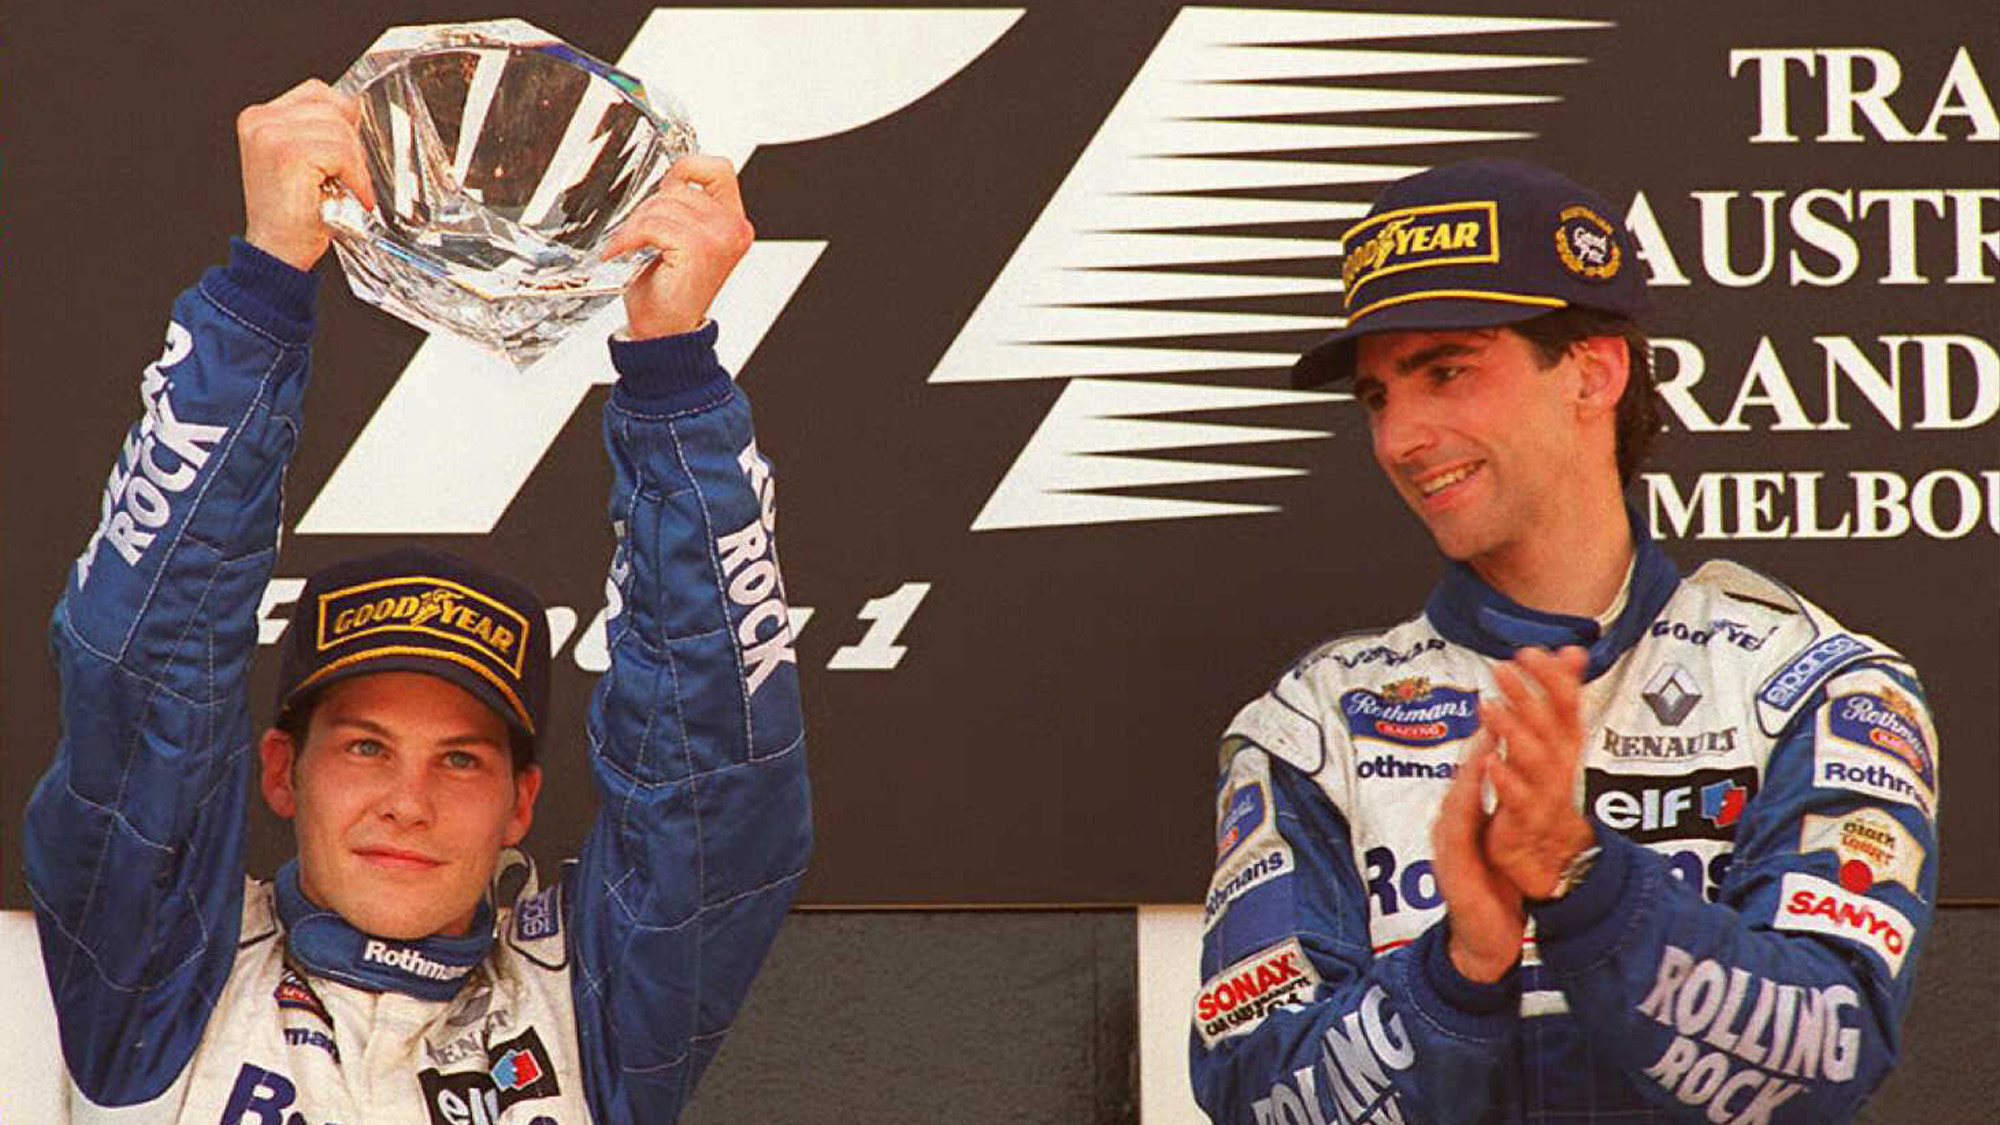 Damon Hill and Jacques Villeneuve on the podium after the 1996 Australian Grand Prix